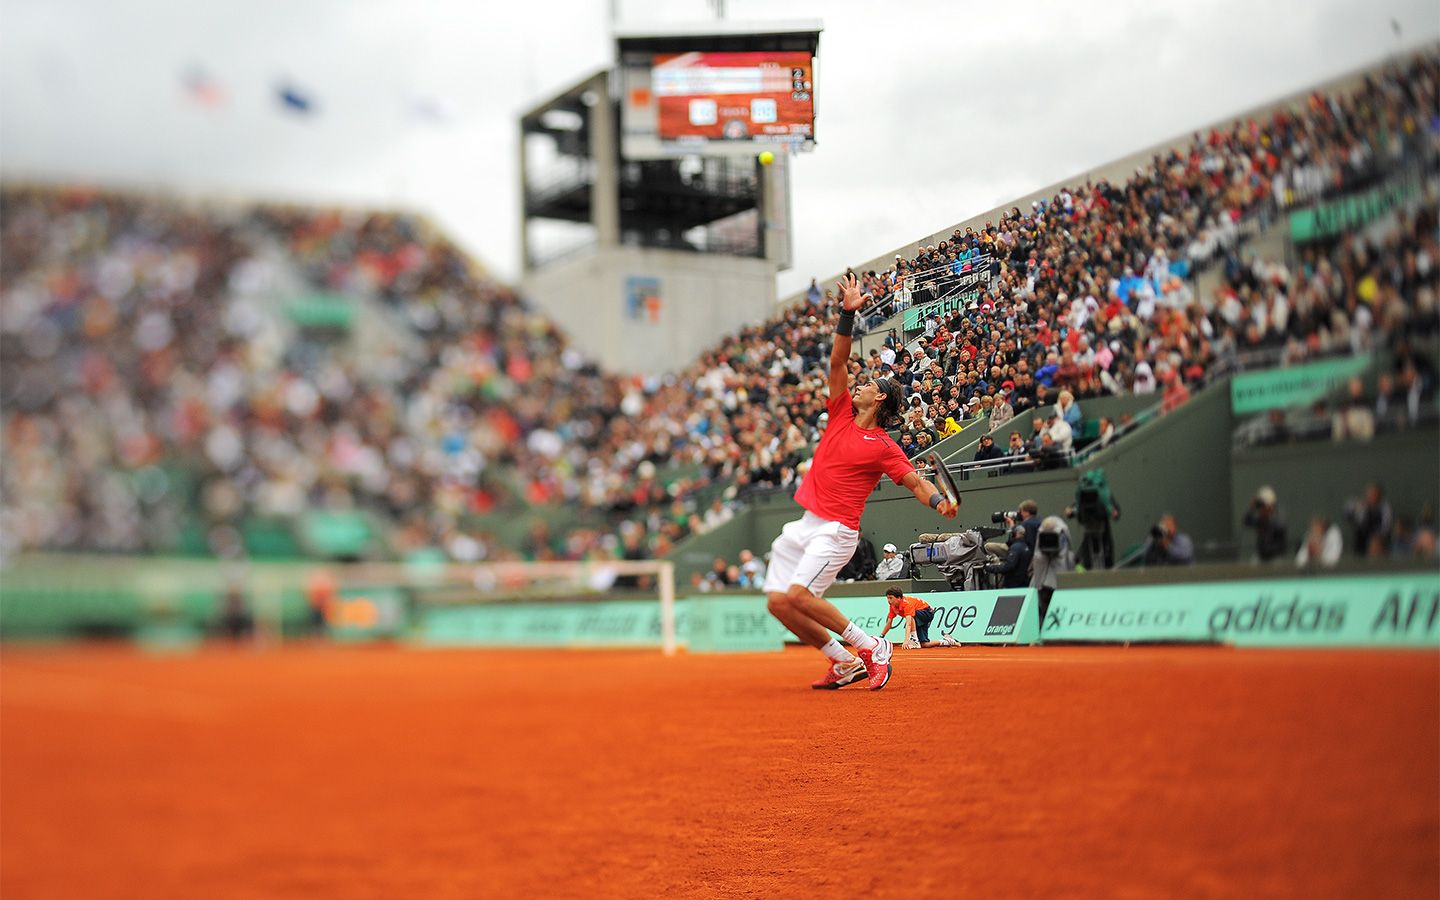 Rafael Nadal This Year S Favorite At Roland Garros Hopes To Take Away The Coupe Des Mousquetaires Roland Garros French Open Photo